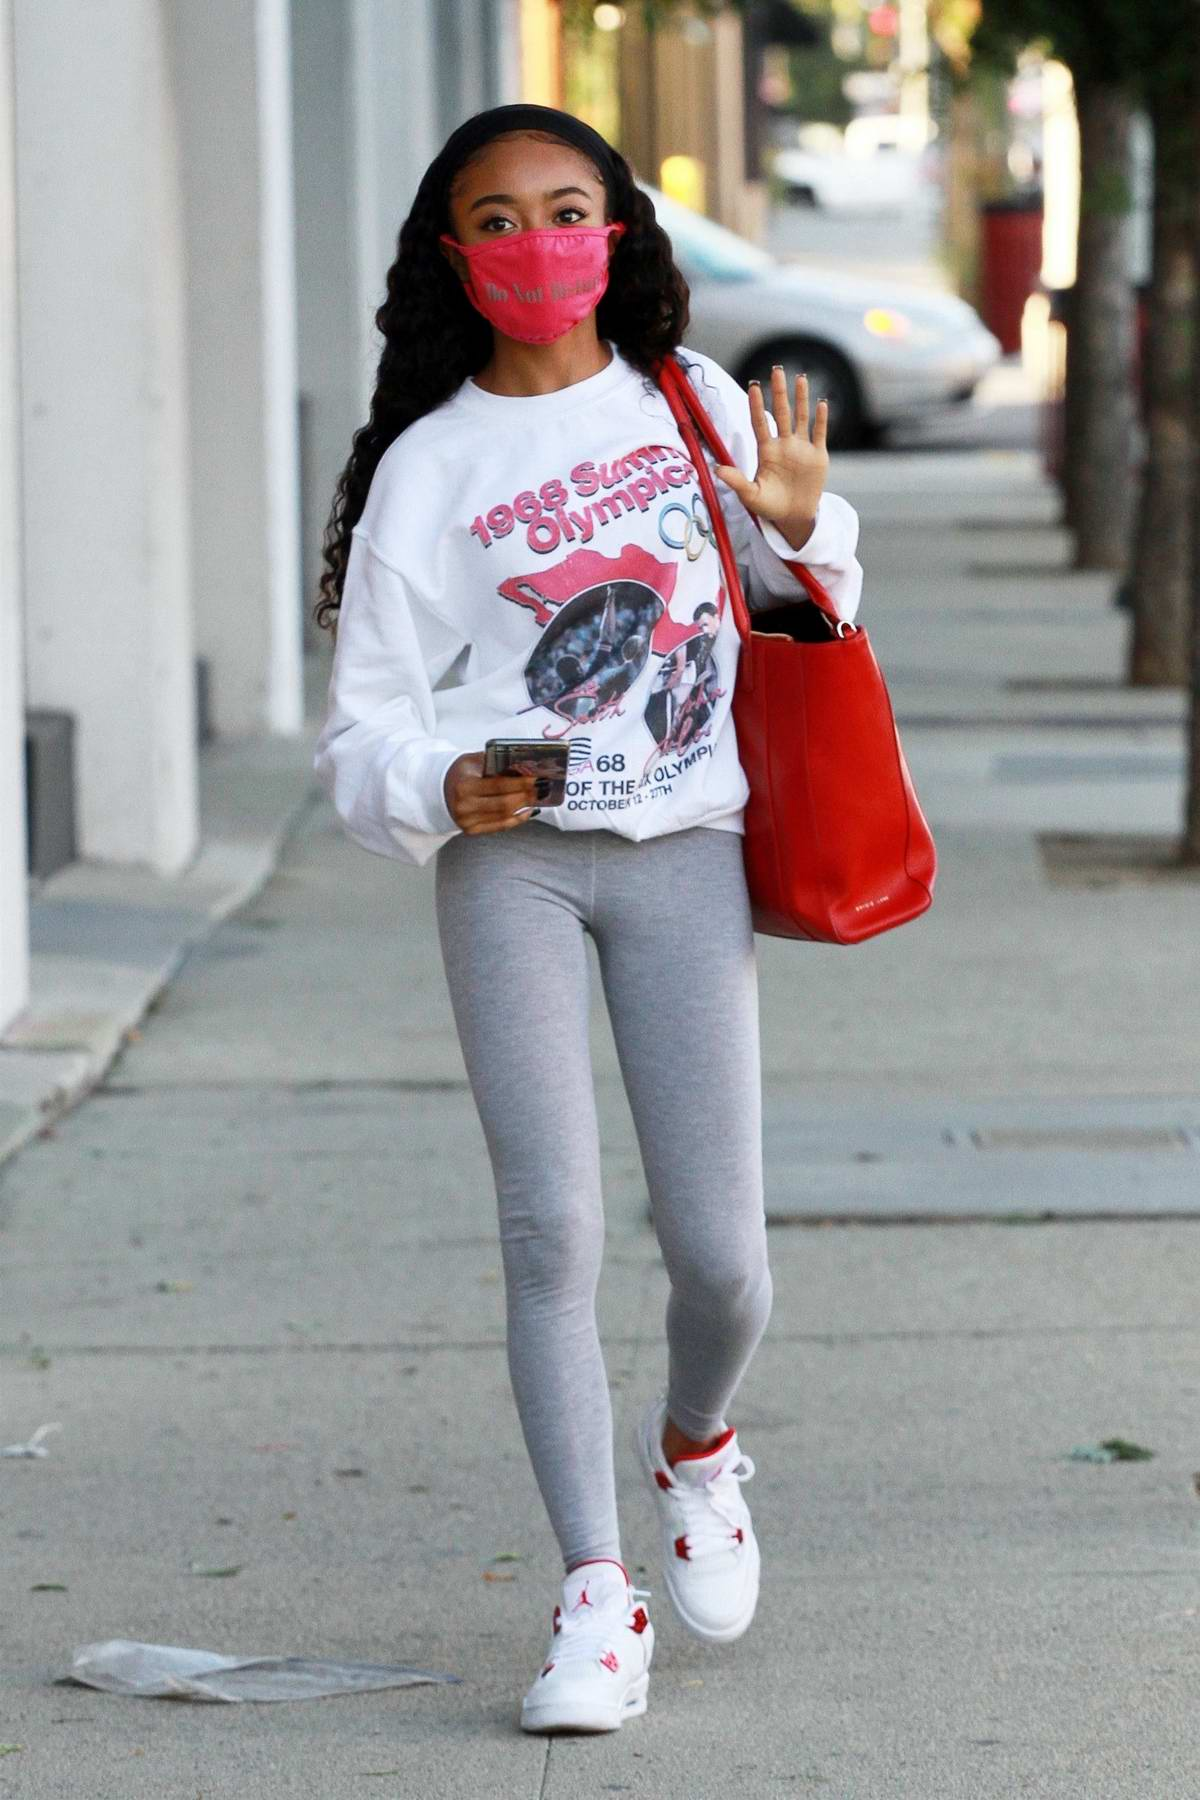 Skai Jackson sports a vintage 1968 Summer Olympic shirt with grey leggings as she heads to the DWTS studio in Los Angeles